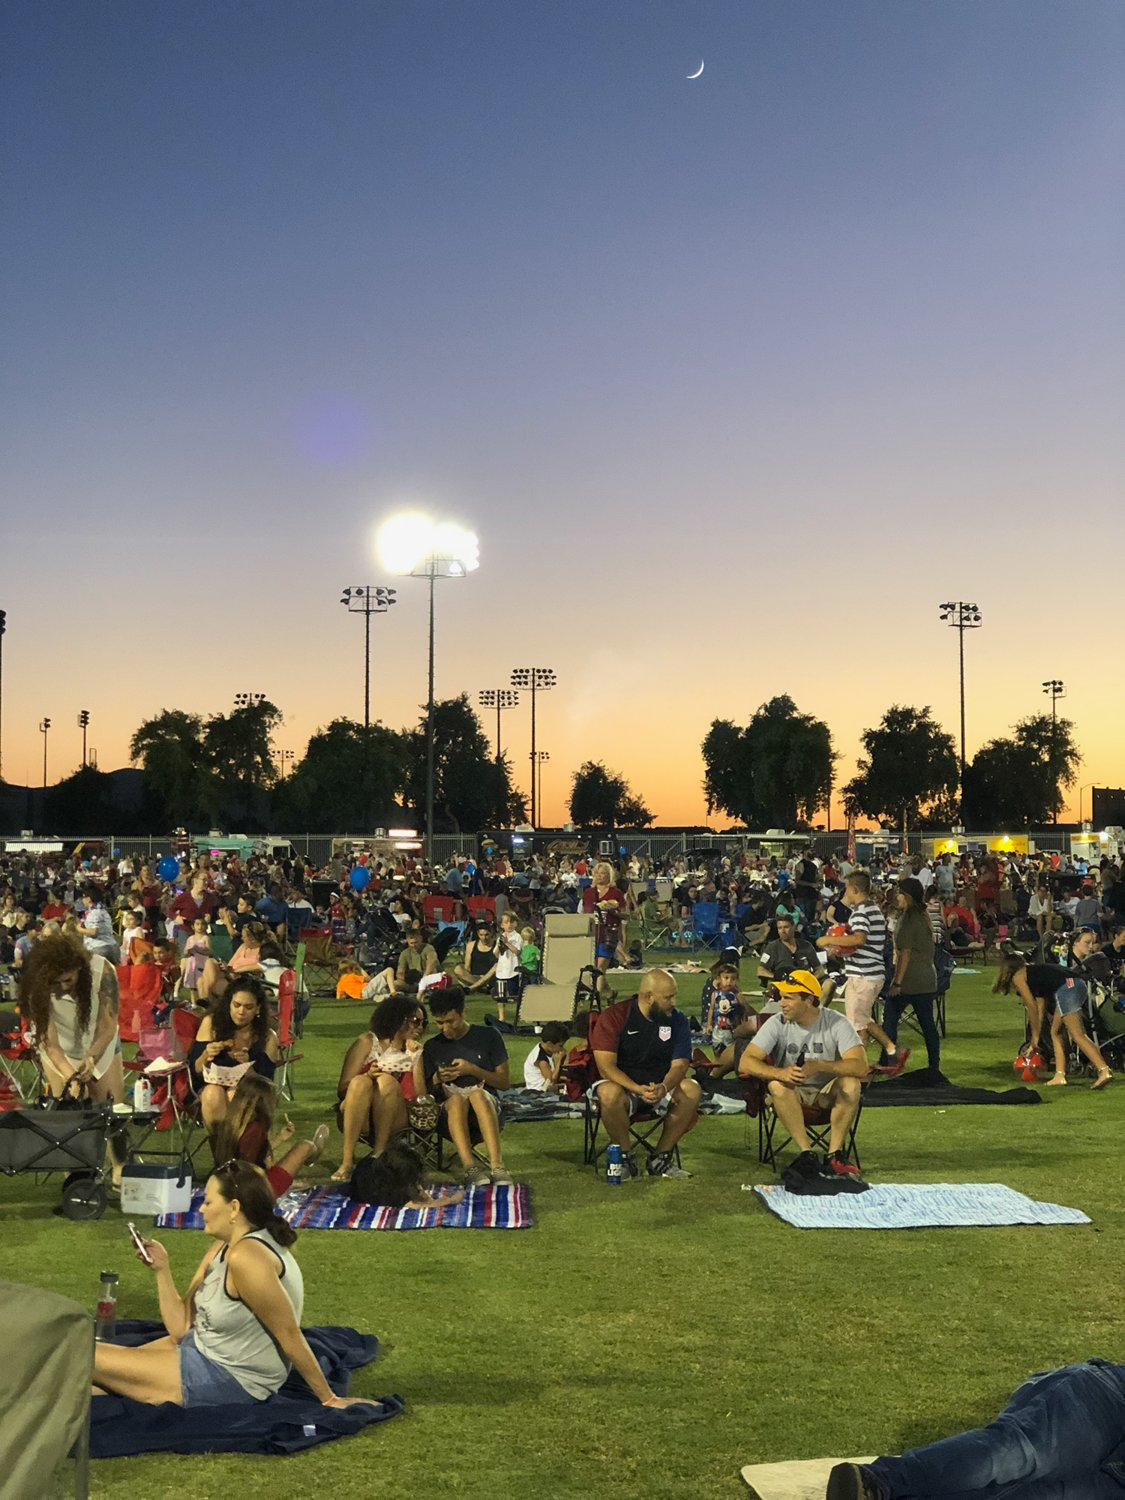 Mark Coronado Park in the City Center is one gathering spot for Surprise residents for events like the Fourth of July fireworks celebration. The city is aching for more parks and open space, however, as the city's population continues to grow.